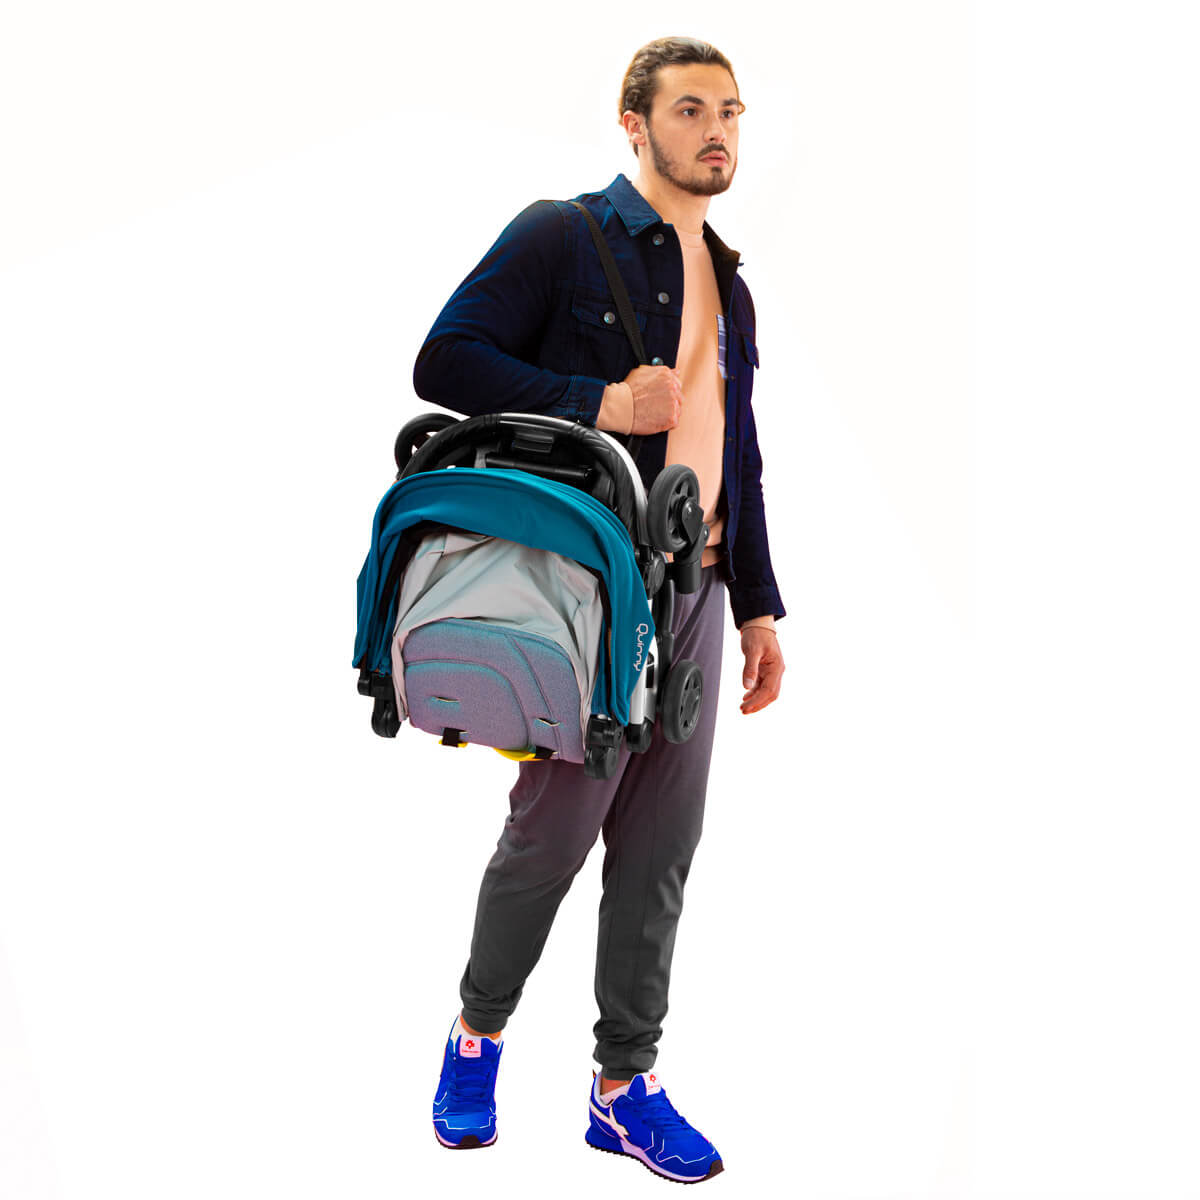 Quinny LDN: Comfortable carrying strap